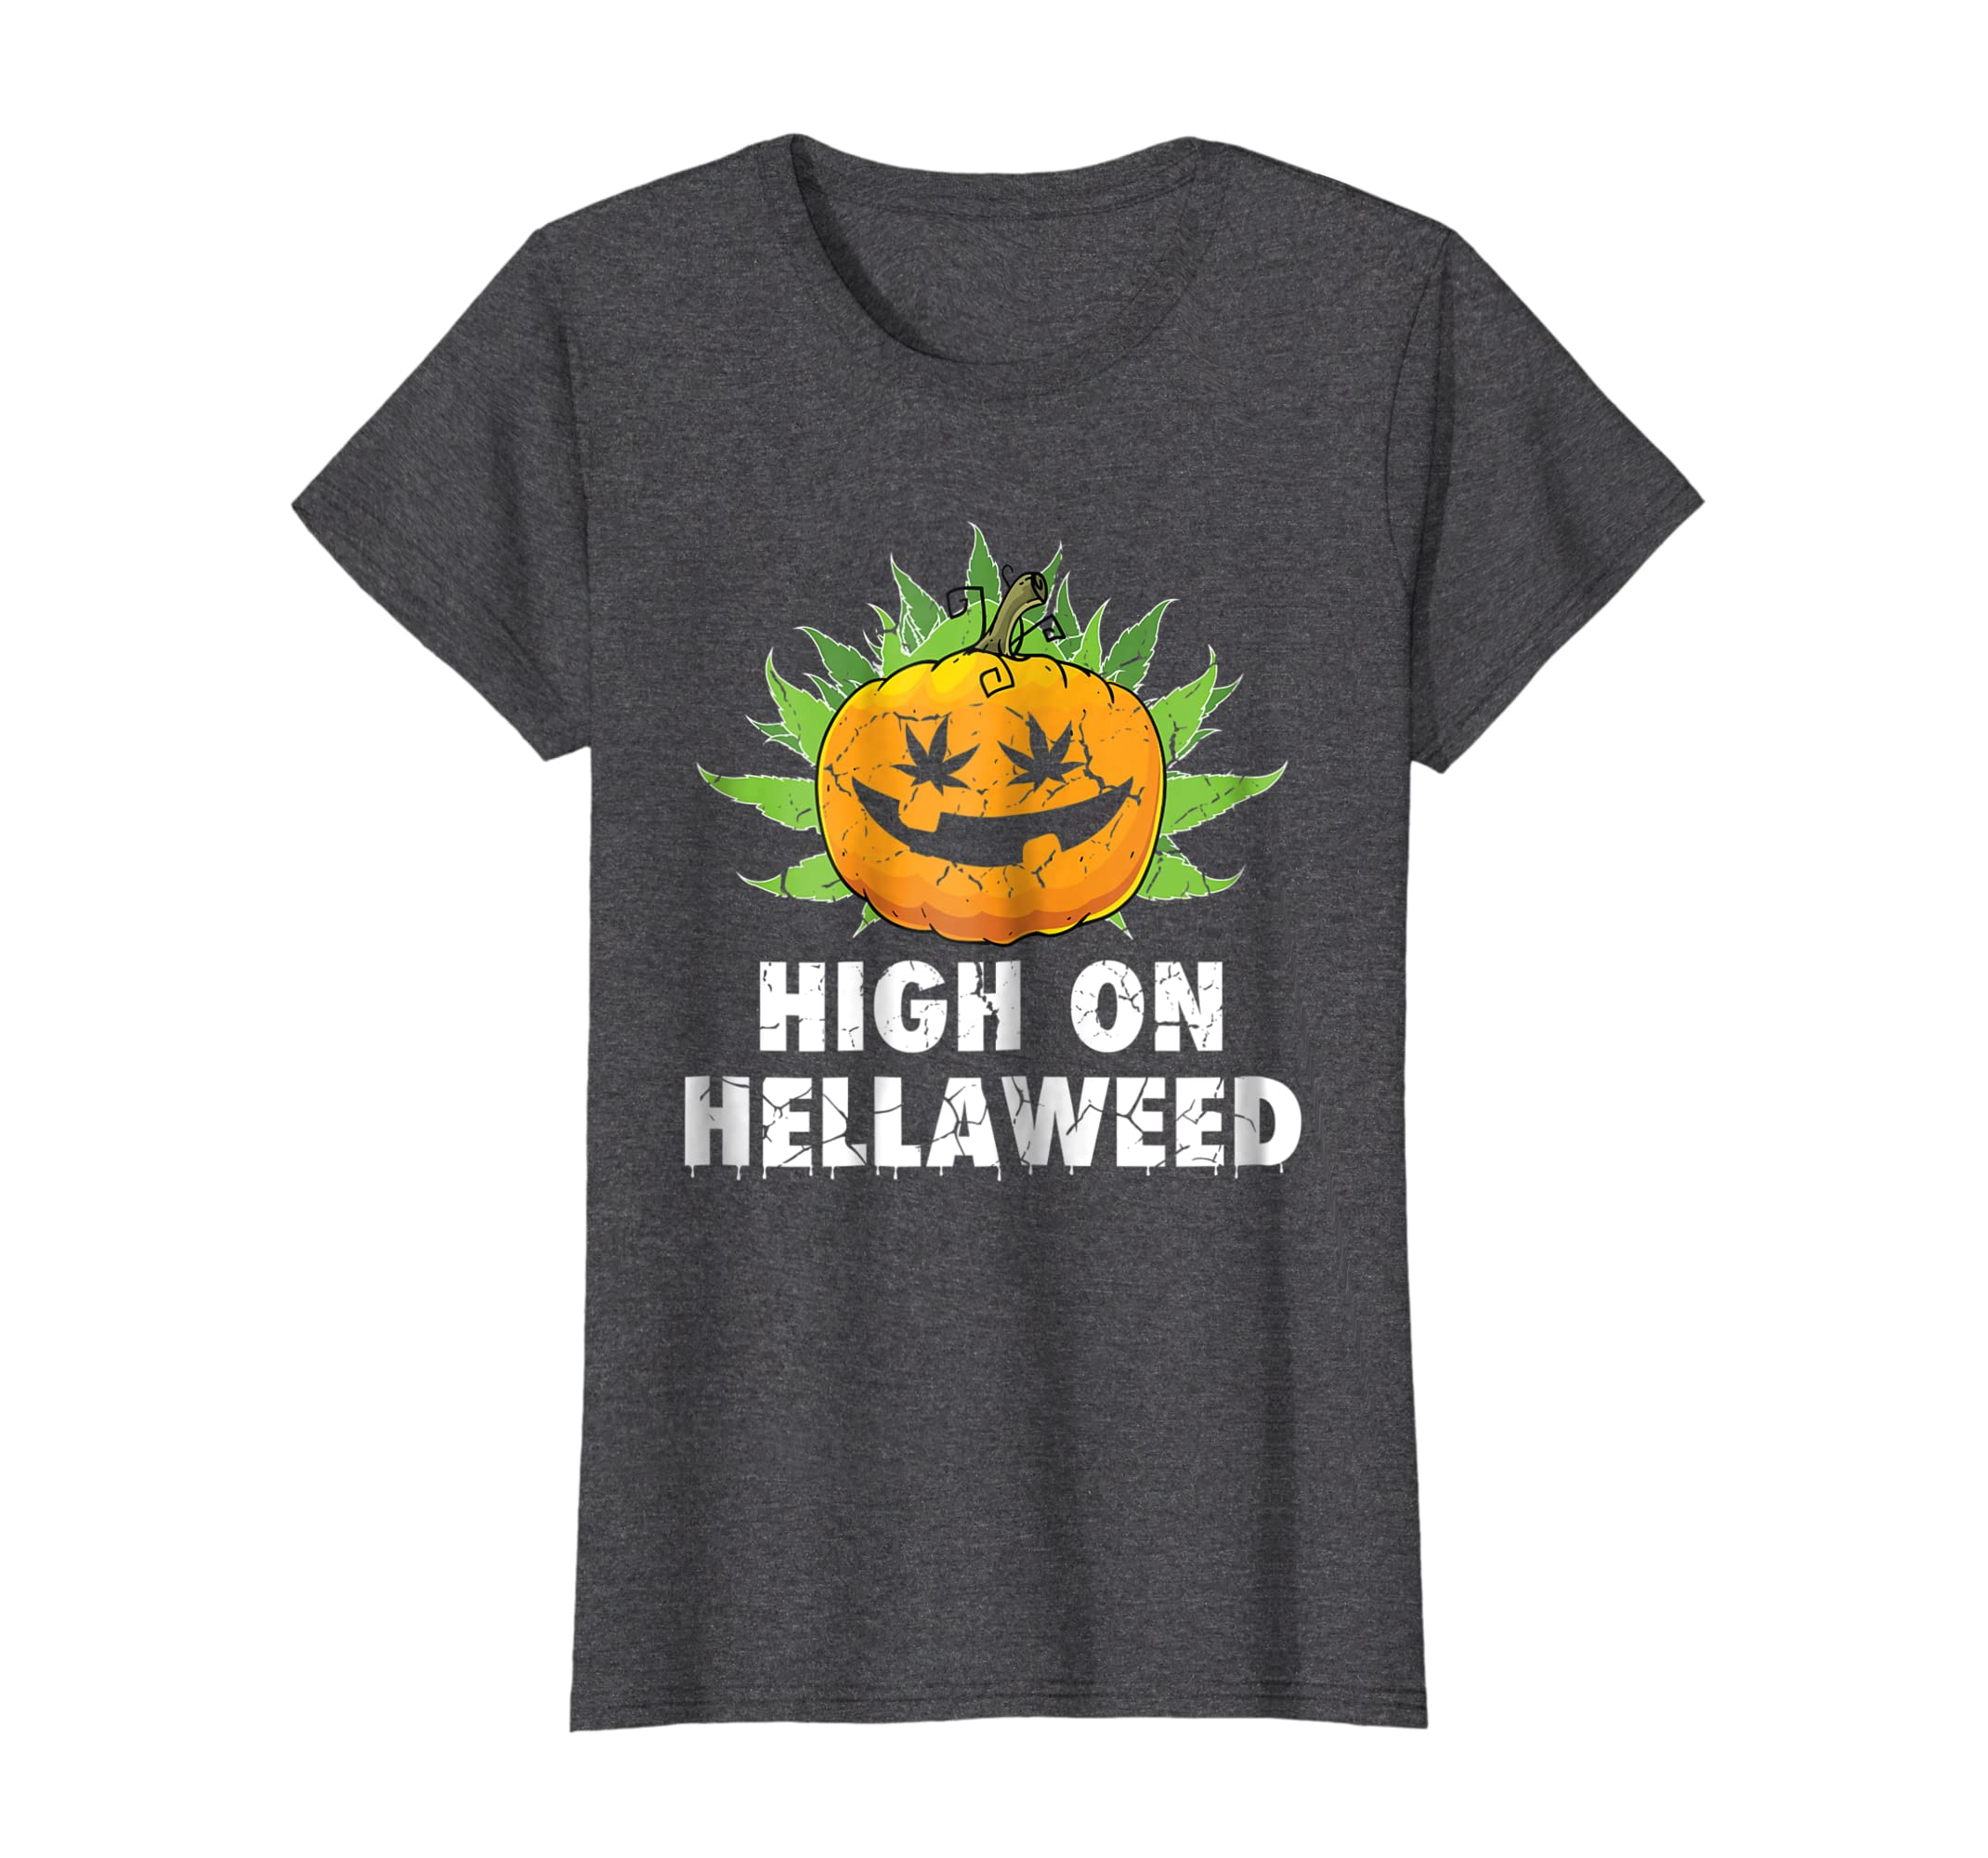 High On Hellaweed Halloween Weed Cannabis Marijuana Shirt-Bawle